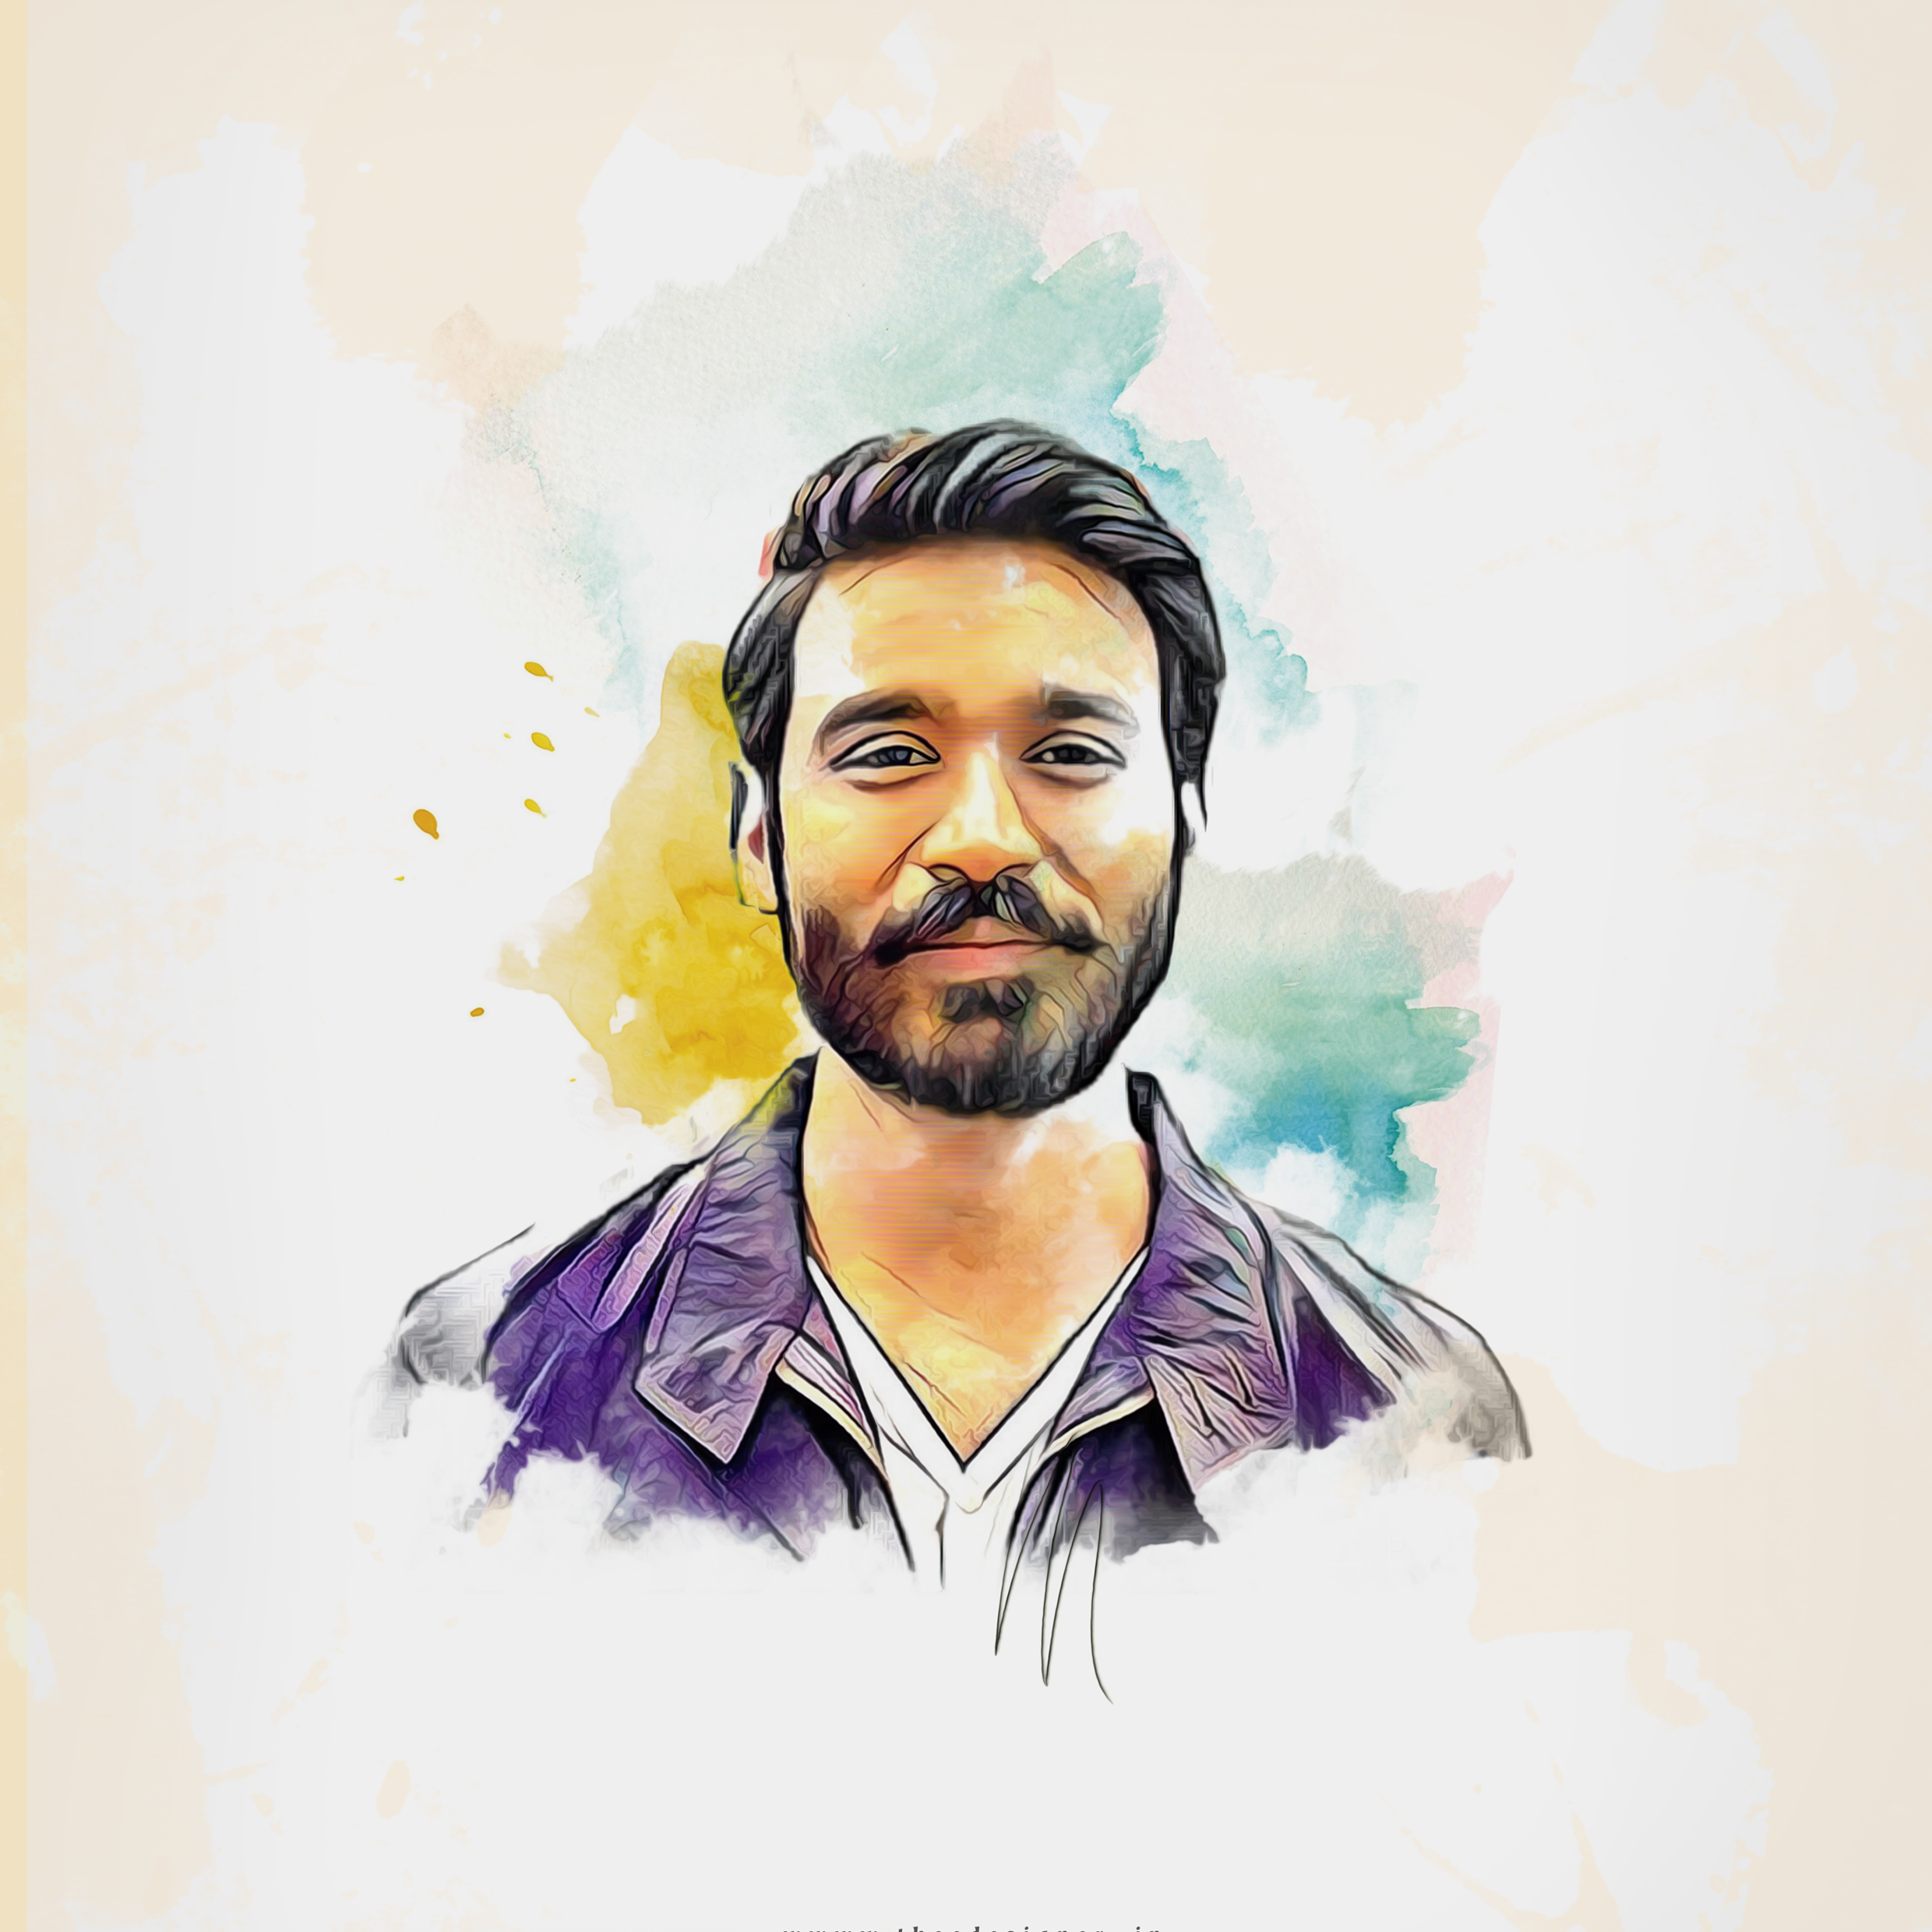 Actor dhanush surya actor indian actresses actors actresses tamil movies south